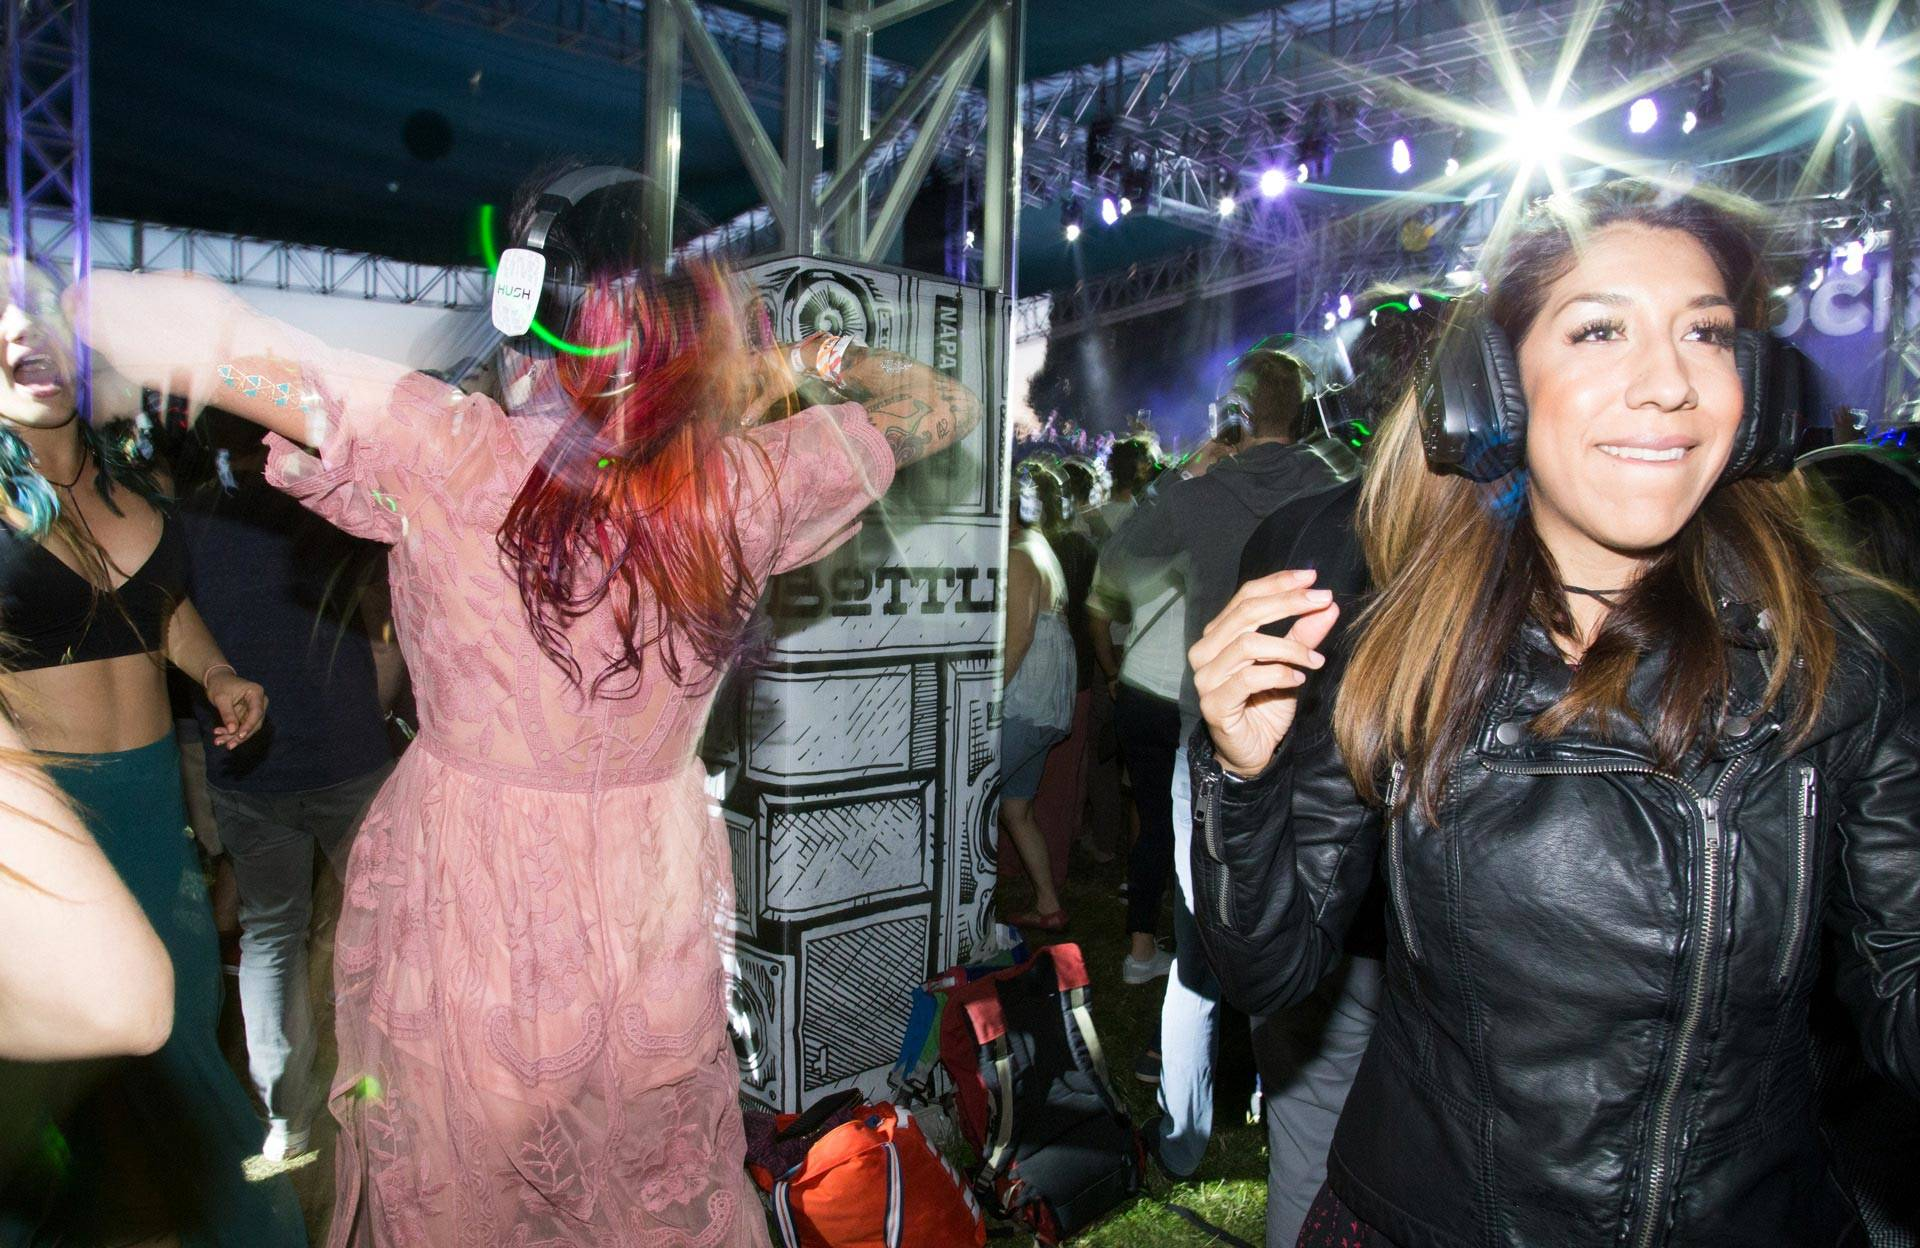 Participants in the massive Silent Disco at BottleRock in Napa, May 27, 2017. Estefany Gonzalez